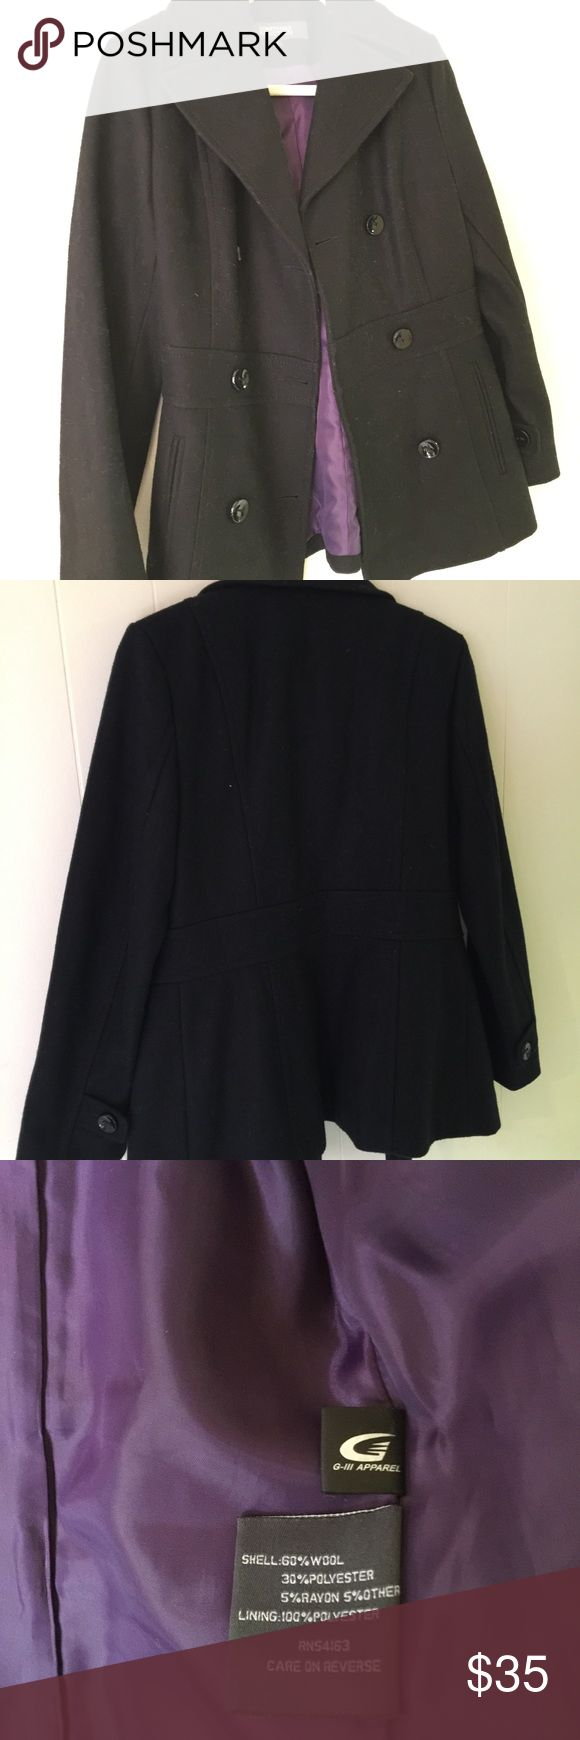 Kenneth Cole Women's Black Wool Overcoat - Size: 4 Kenneth Cole Women's Wool Overcoat - Size: 4. Like-new, great condition, no flaws, nice purple inner lining.   #kennethcole #wool #coat #woolcoat #overcoat #black #purplelining #likenew #size4 Kenneth Cole Reaction Jackets & Coats Pea Coats